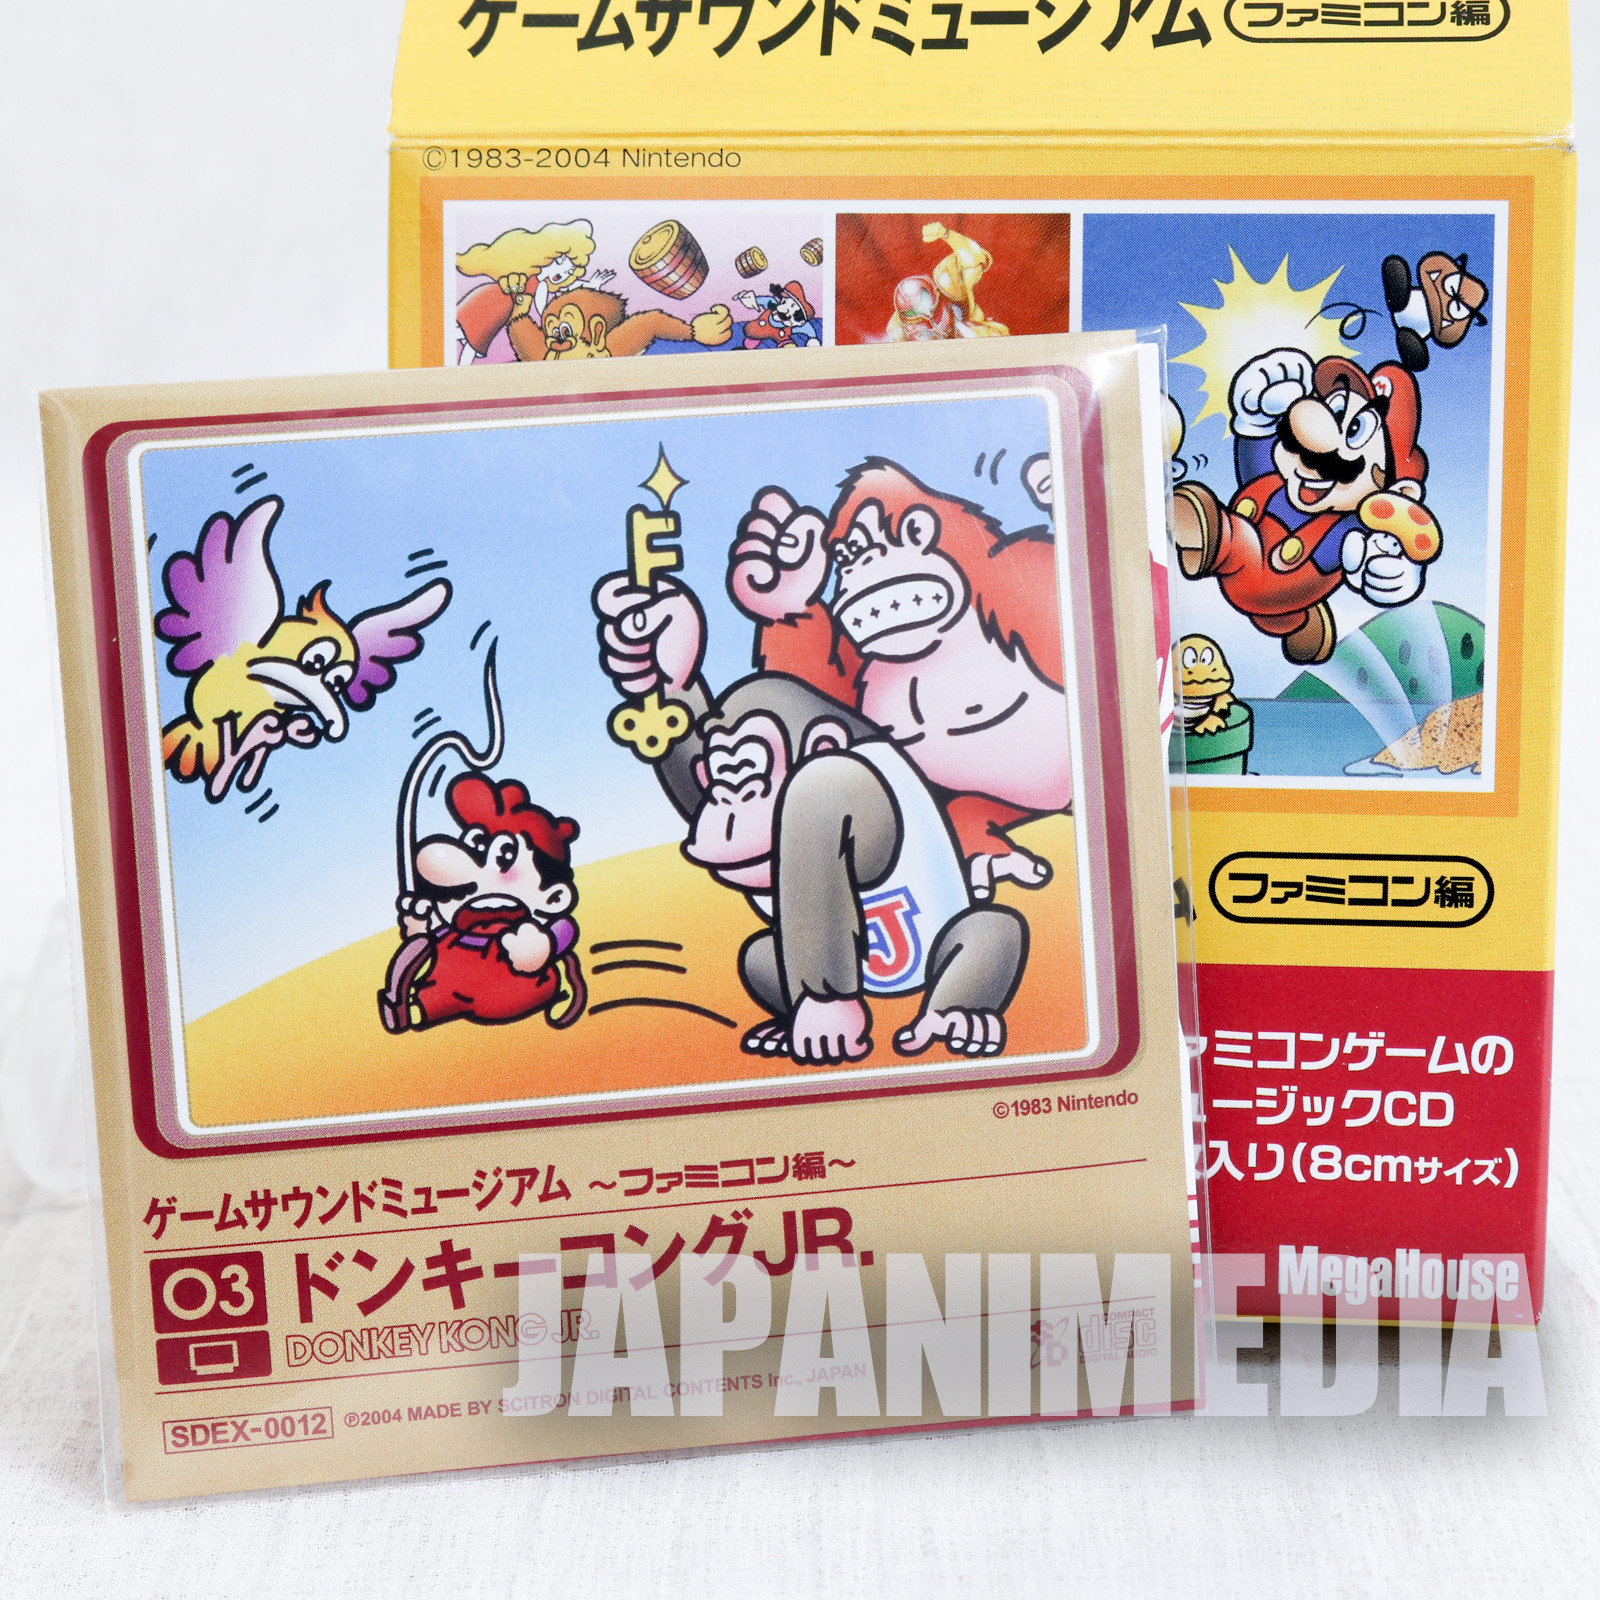 Donkey Kong Jr. Game Sound Museum Nintendo Music 8cm CD JAPAN FAMICOM